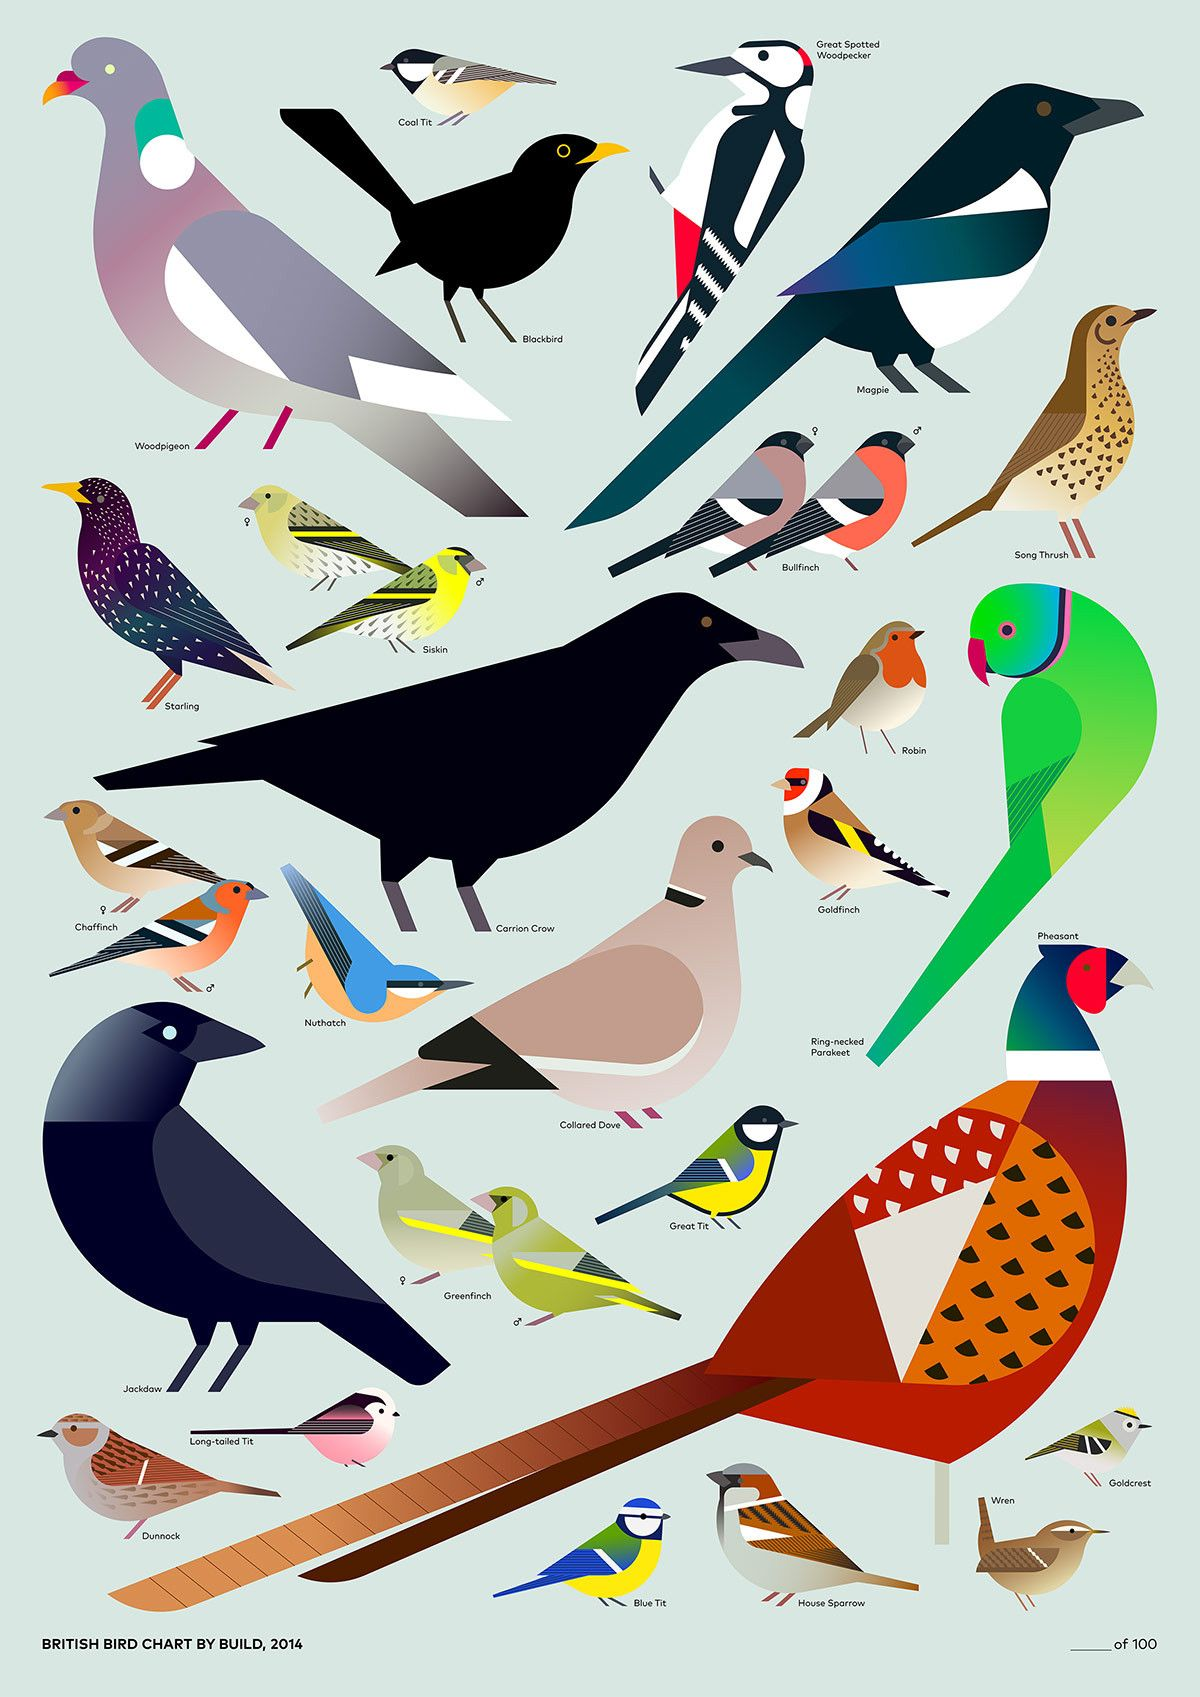 Image From Http Cdn Shopify Com S Files 1 0193 1892 Products Bld Shop Garden Birds Grey Jpg V 1416911755 Bird Graphic Bird Illustration Bird Art